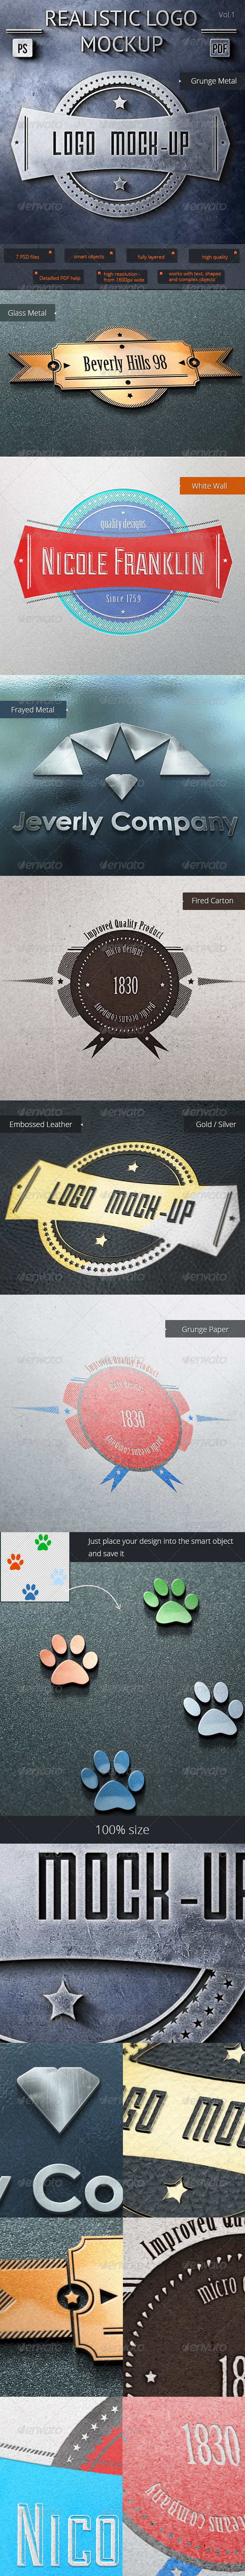 7 Realistic Logo Mock-Up Vol.1 - Logo Product Mock-Ups